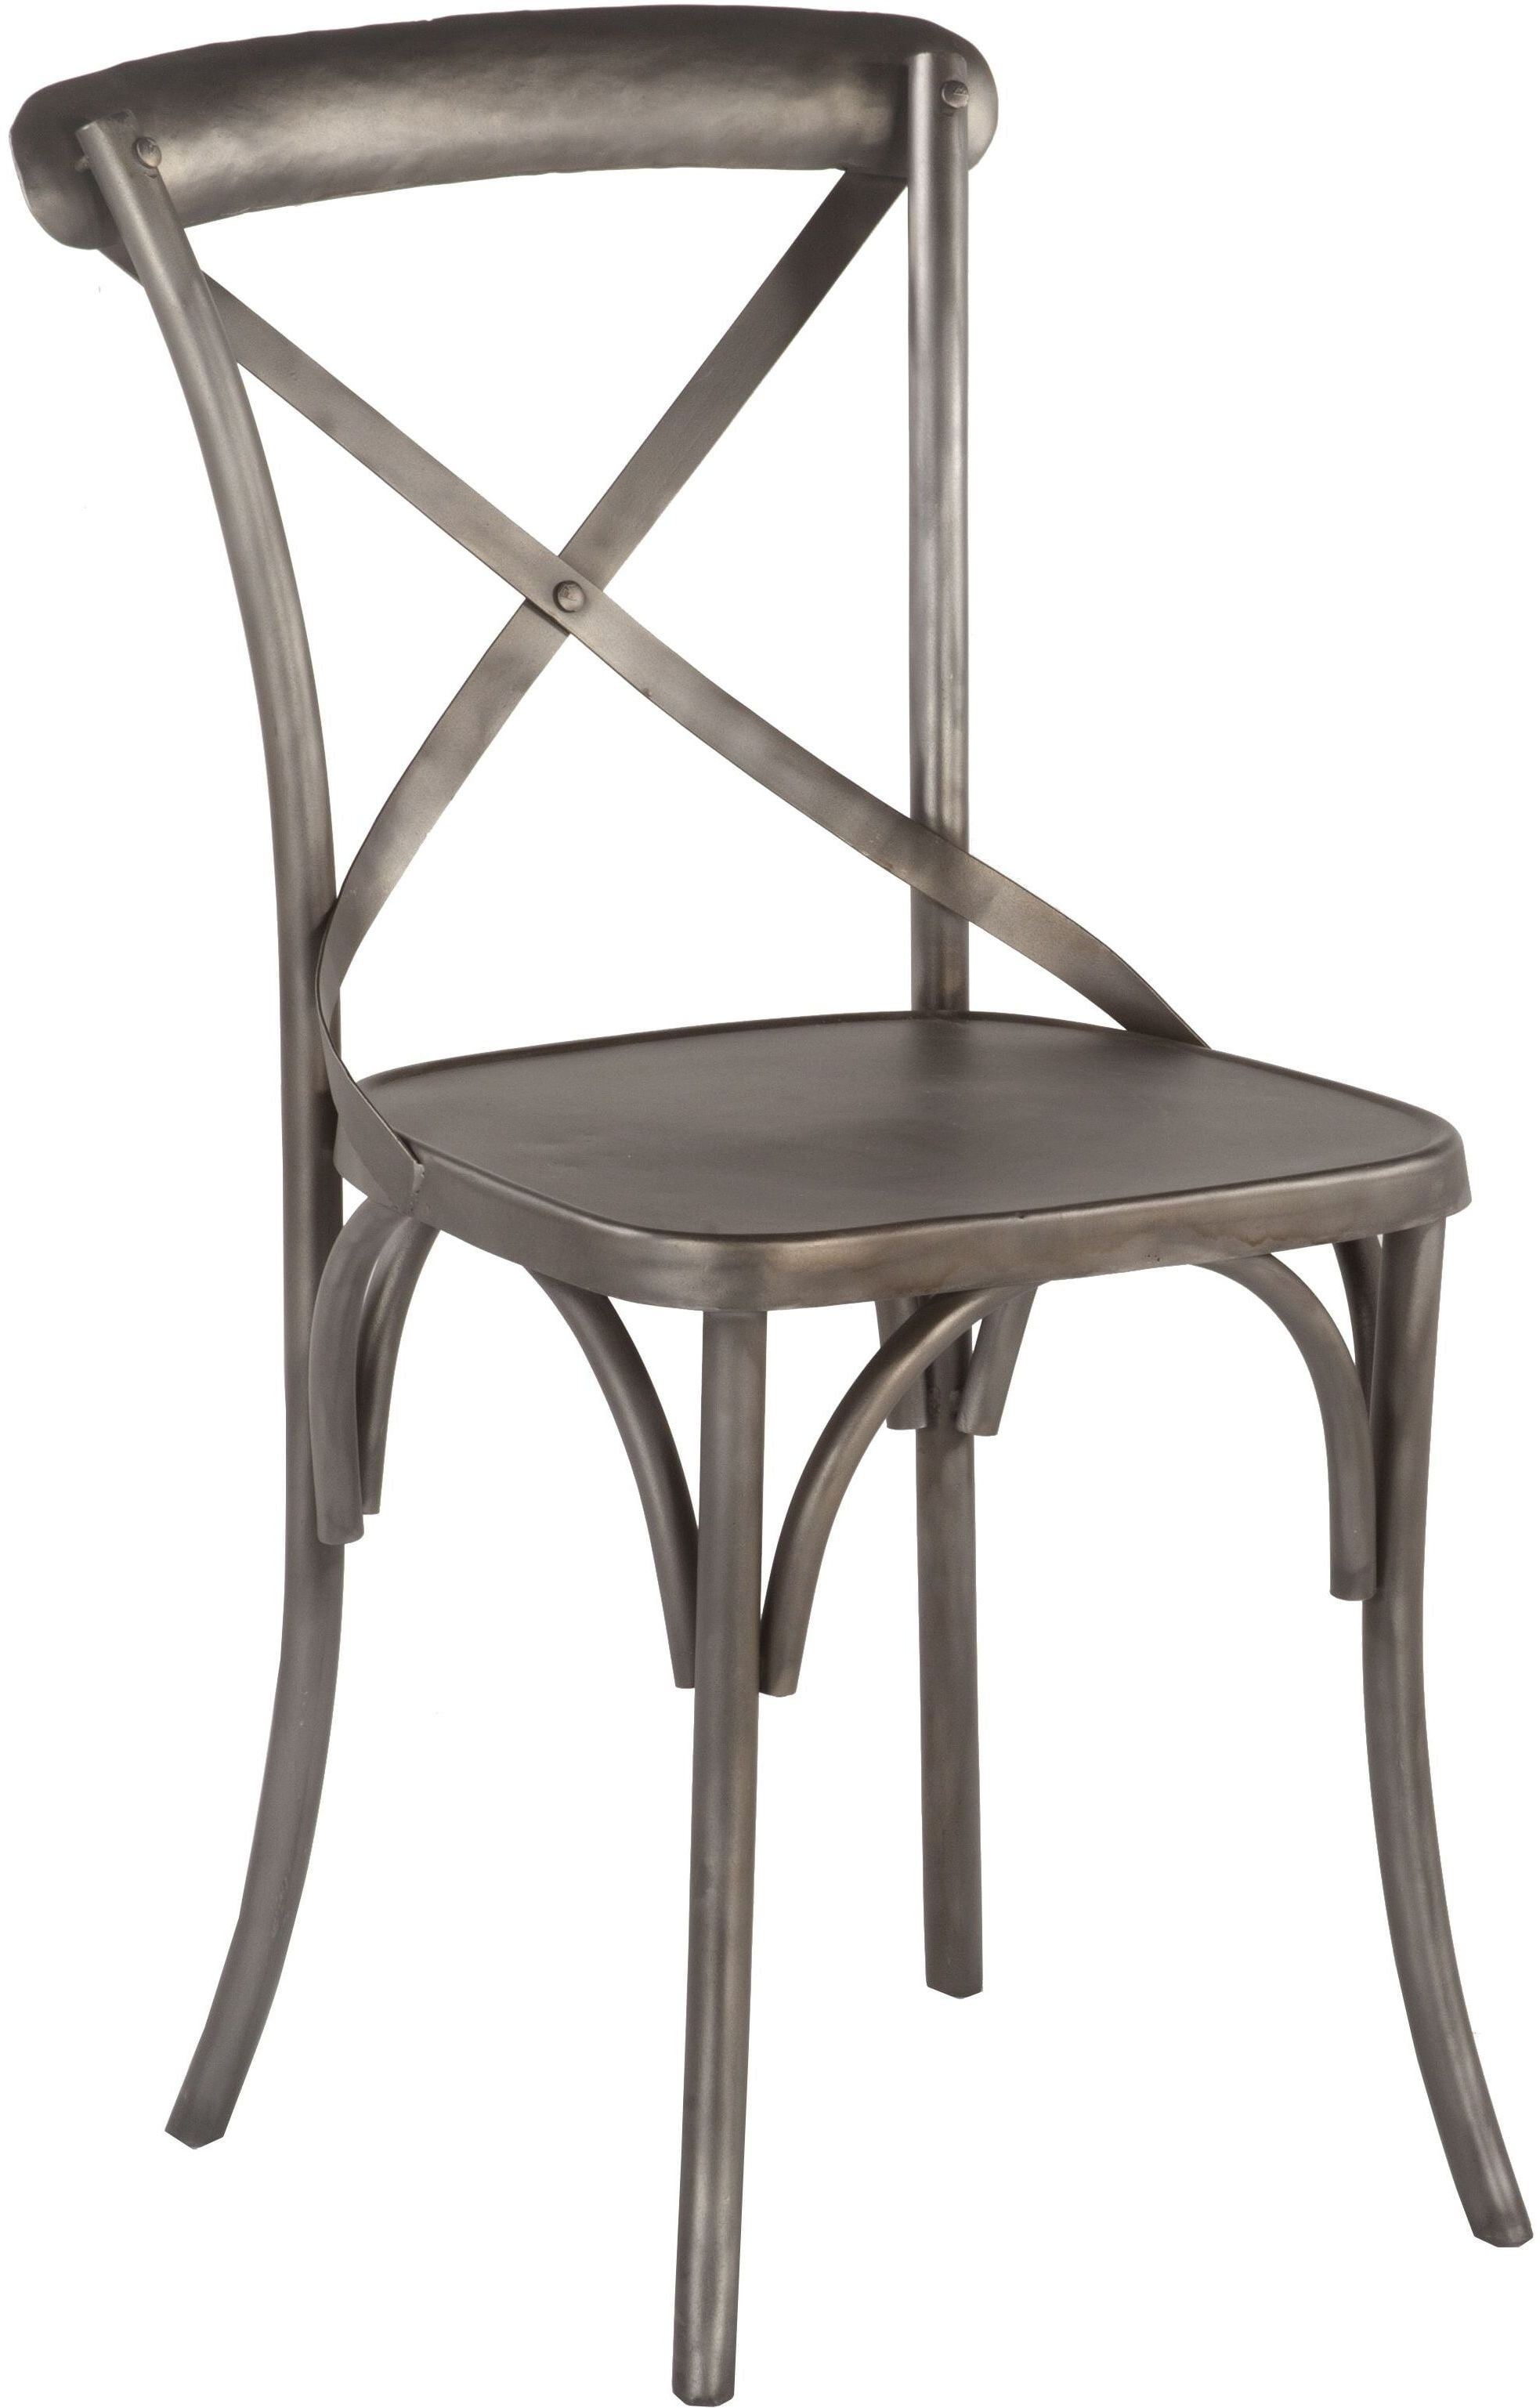 Anderson Reclaimed Antique Nickel Dining Chair Set of 2 from Home ...